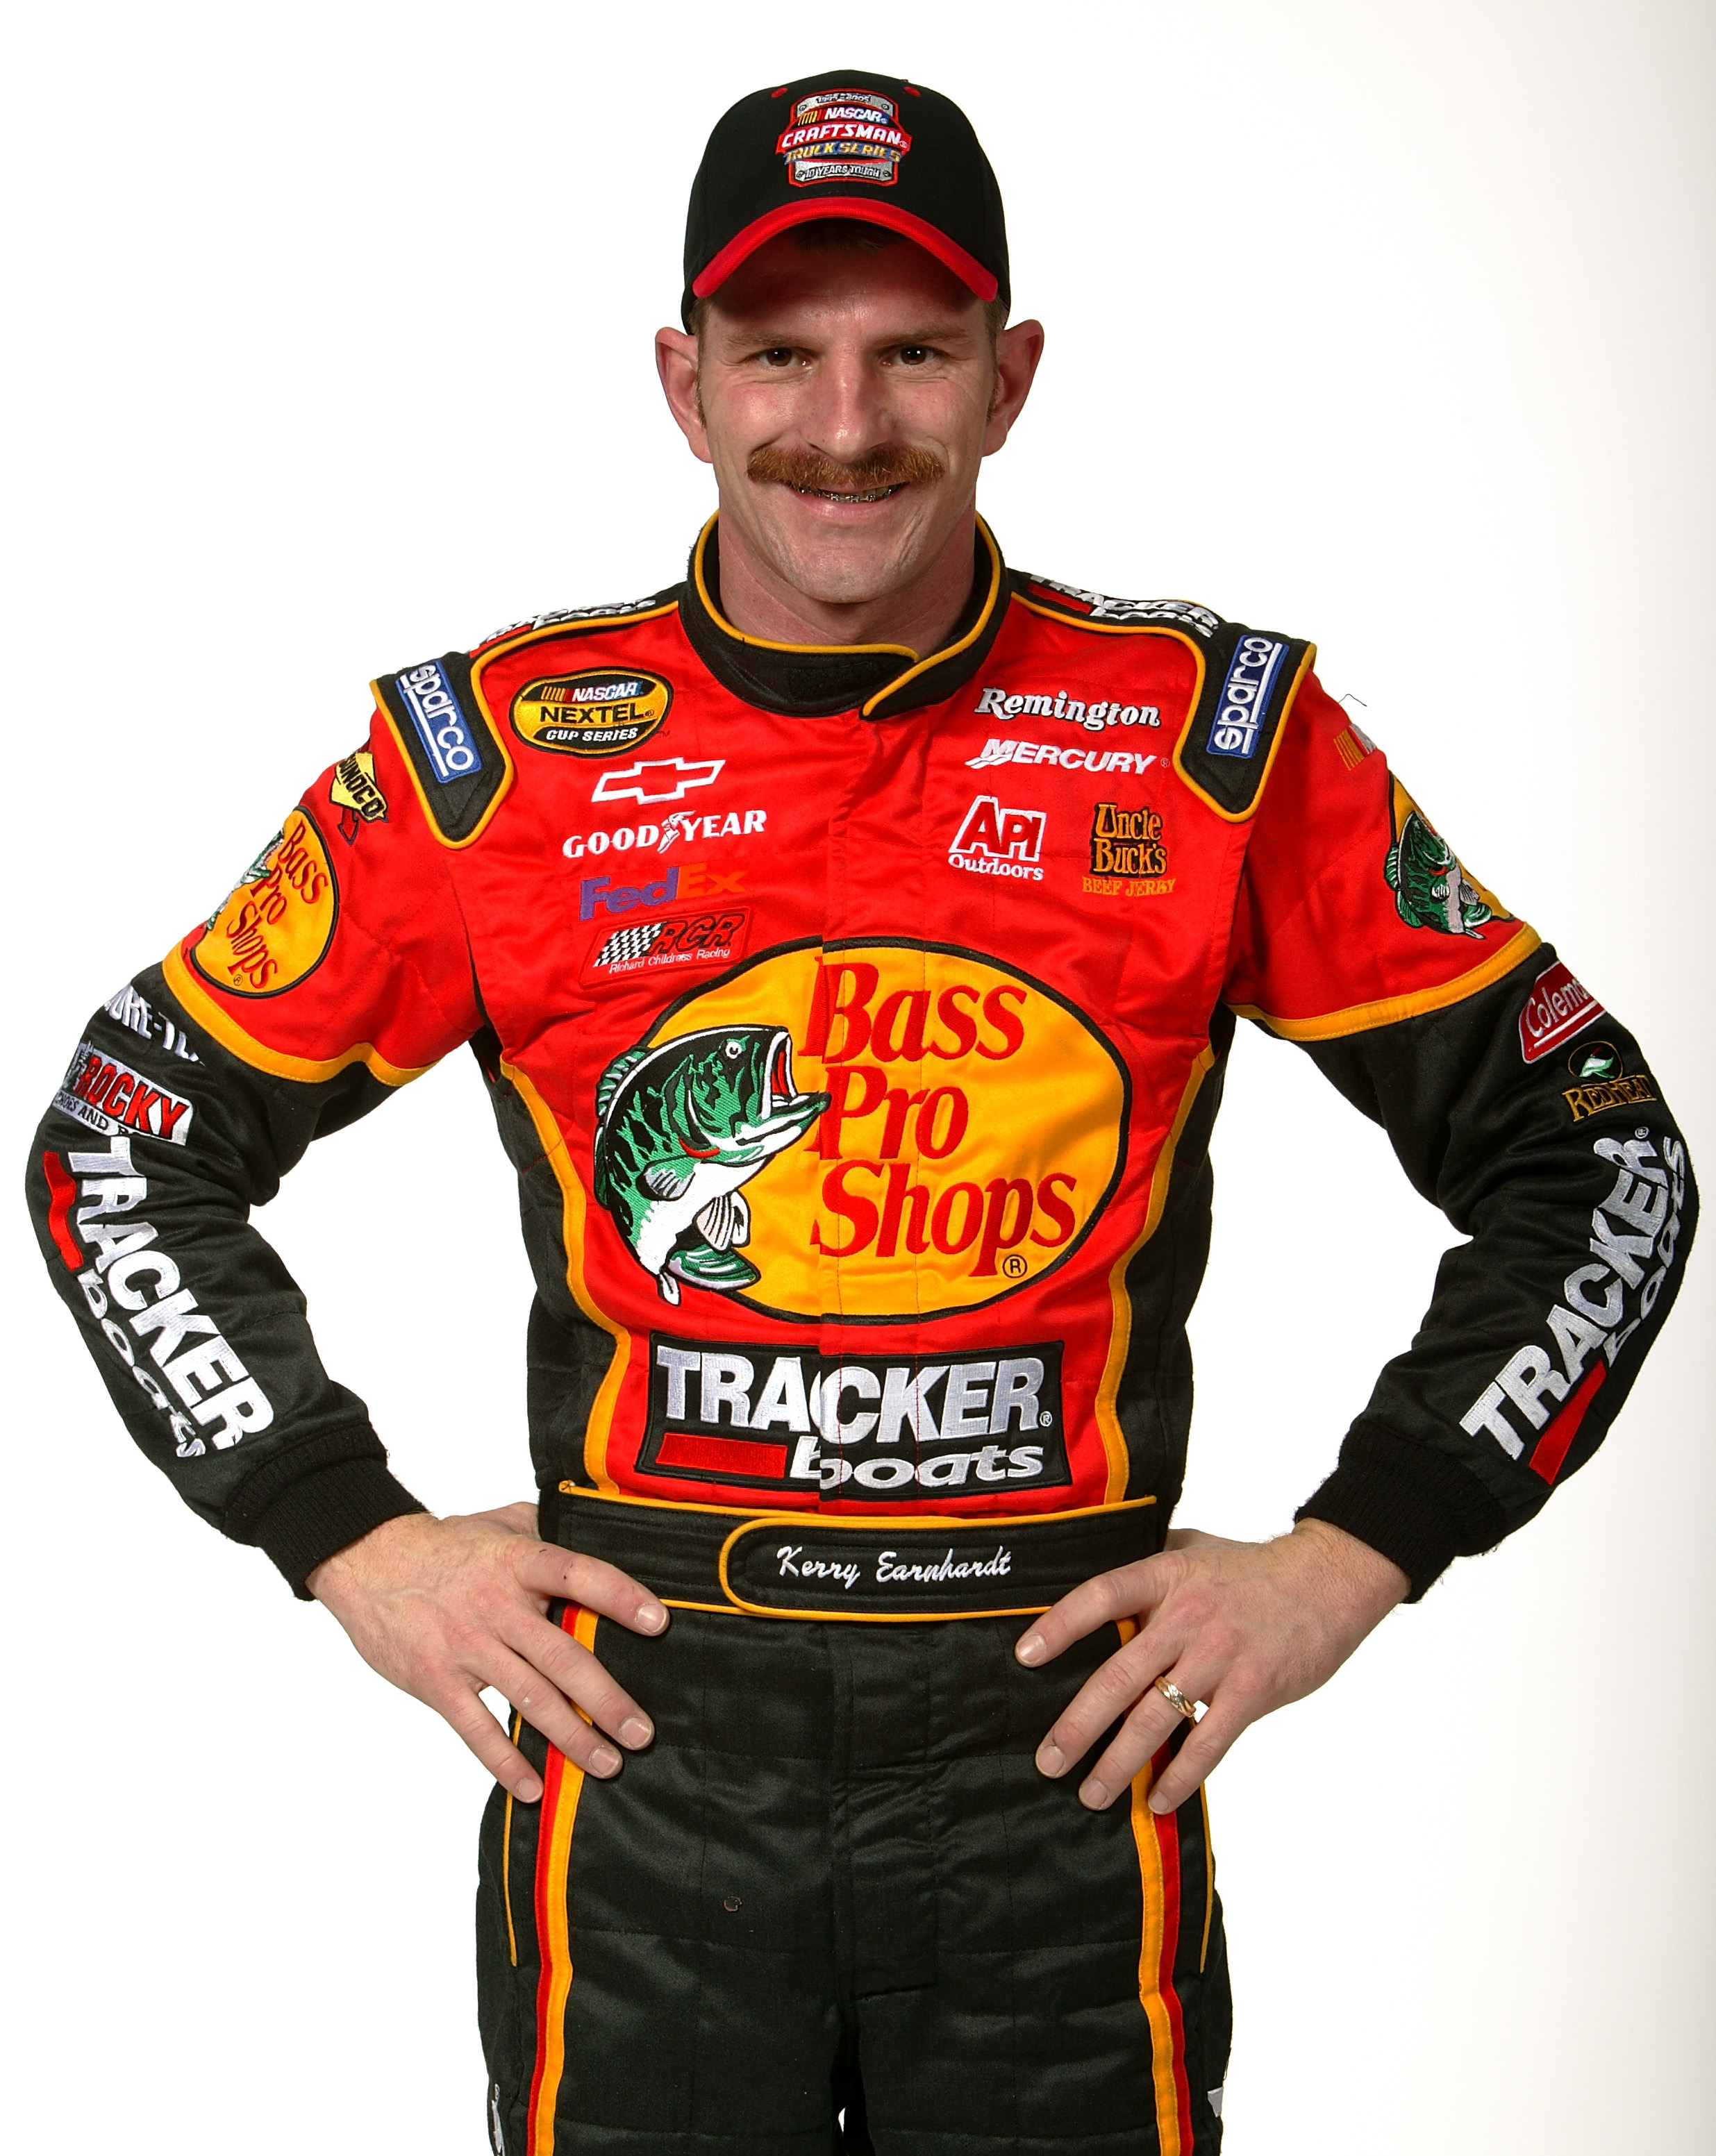 DAYTONA BEACH, FL - FEBRUARY 17:  Kerry Earnhardt, driver of the NASCAR Craftsman Truck Series Bass Pro Shops Cheverolet, poses at the NASCAR Nextel Cup Daytona 500 on February 17, 2005 at the Daytona International Speedway in Daytona, Florida.  (Photo By